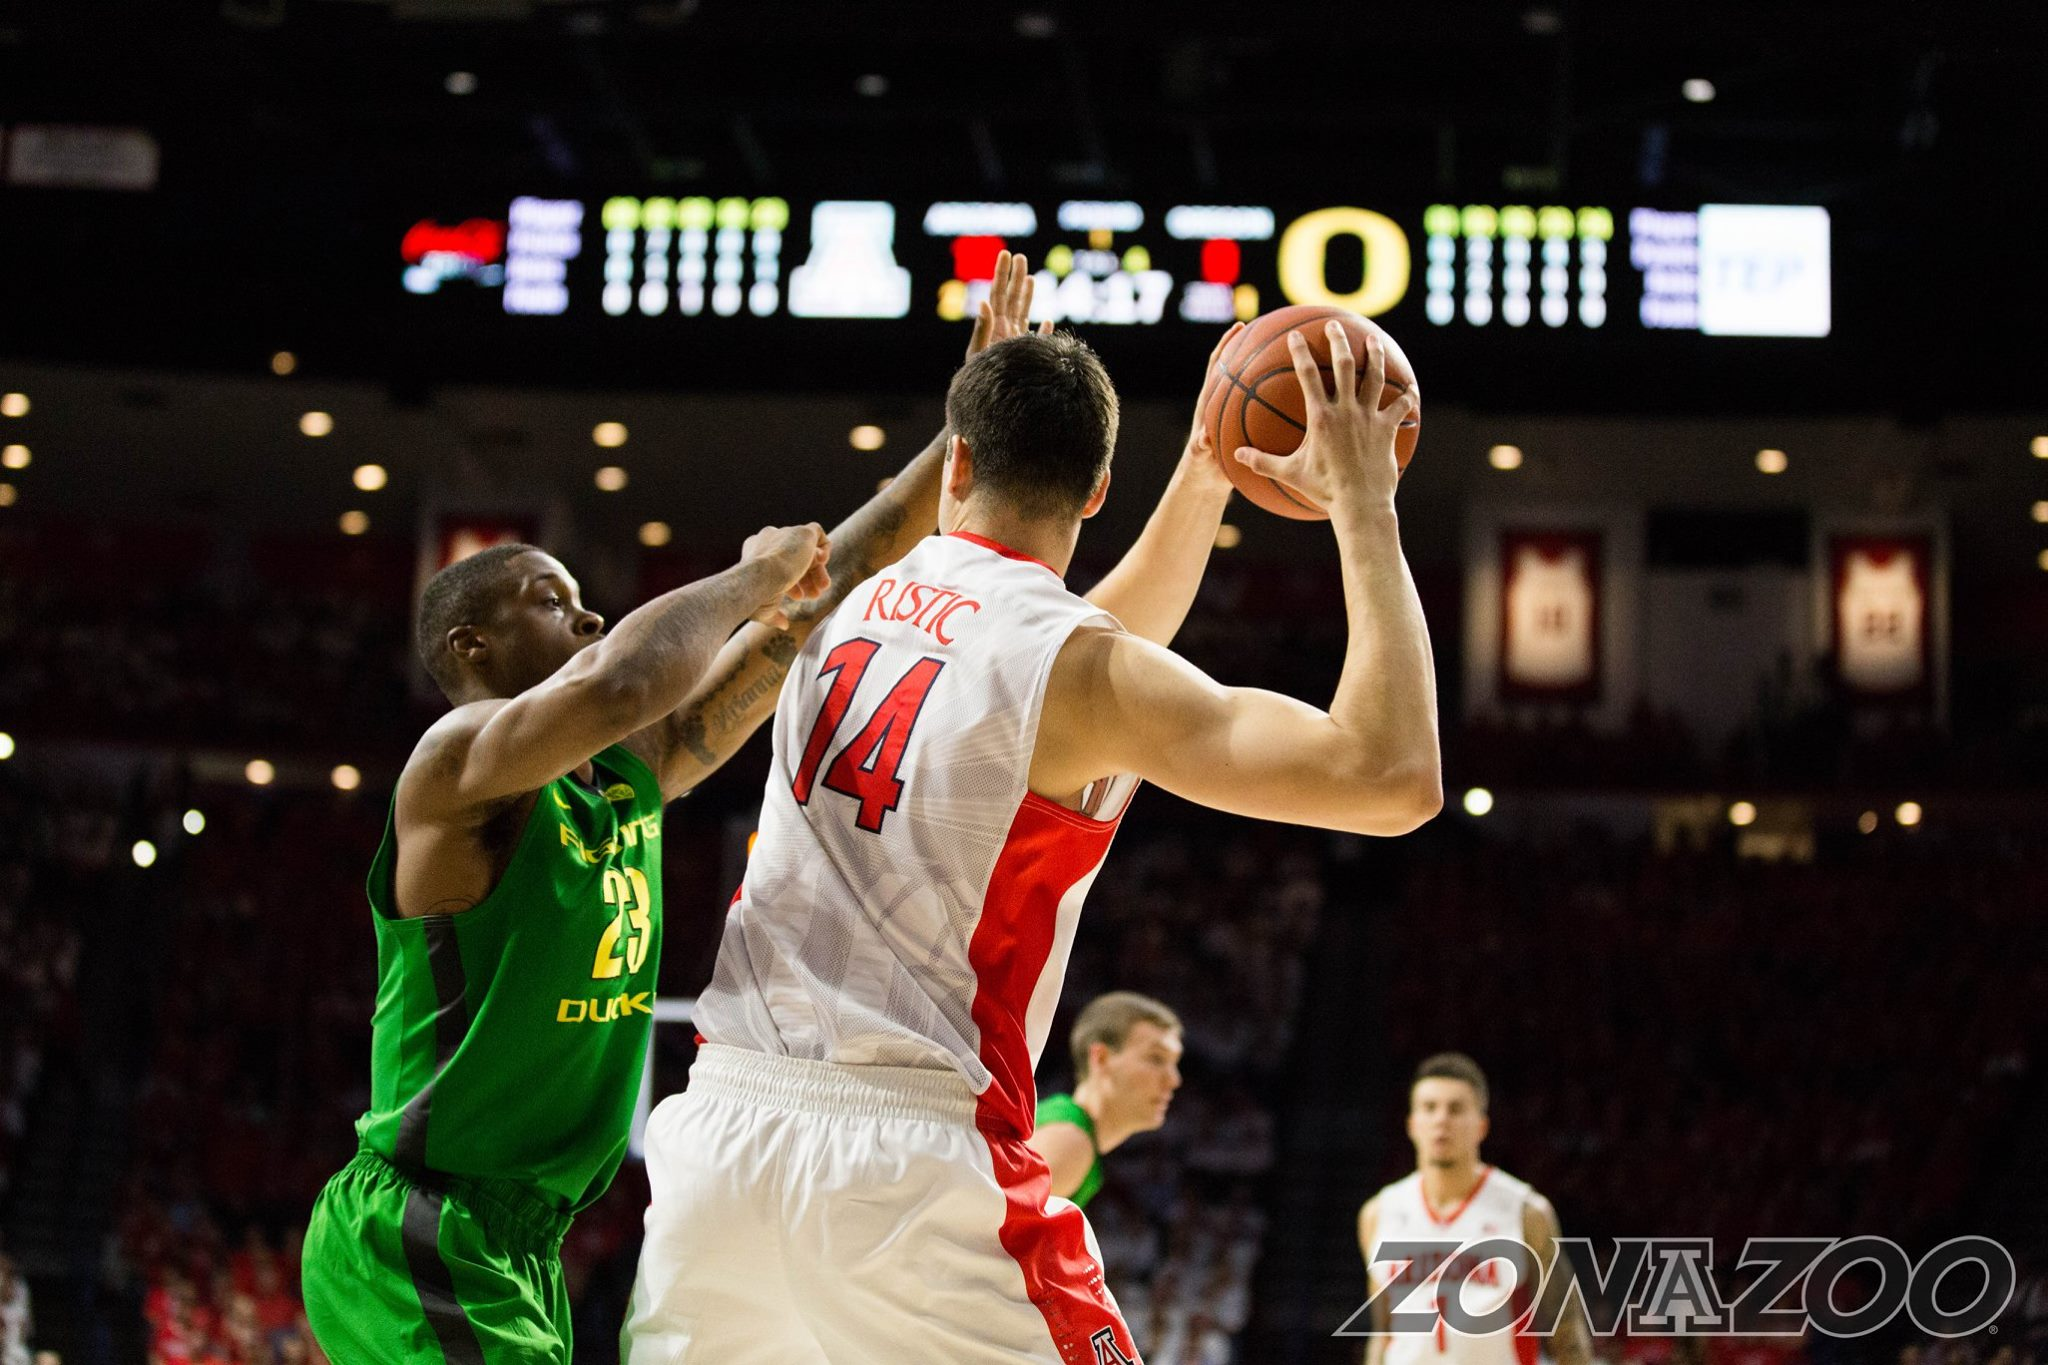 ristic with ball.jpg